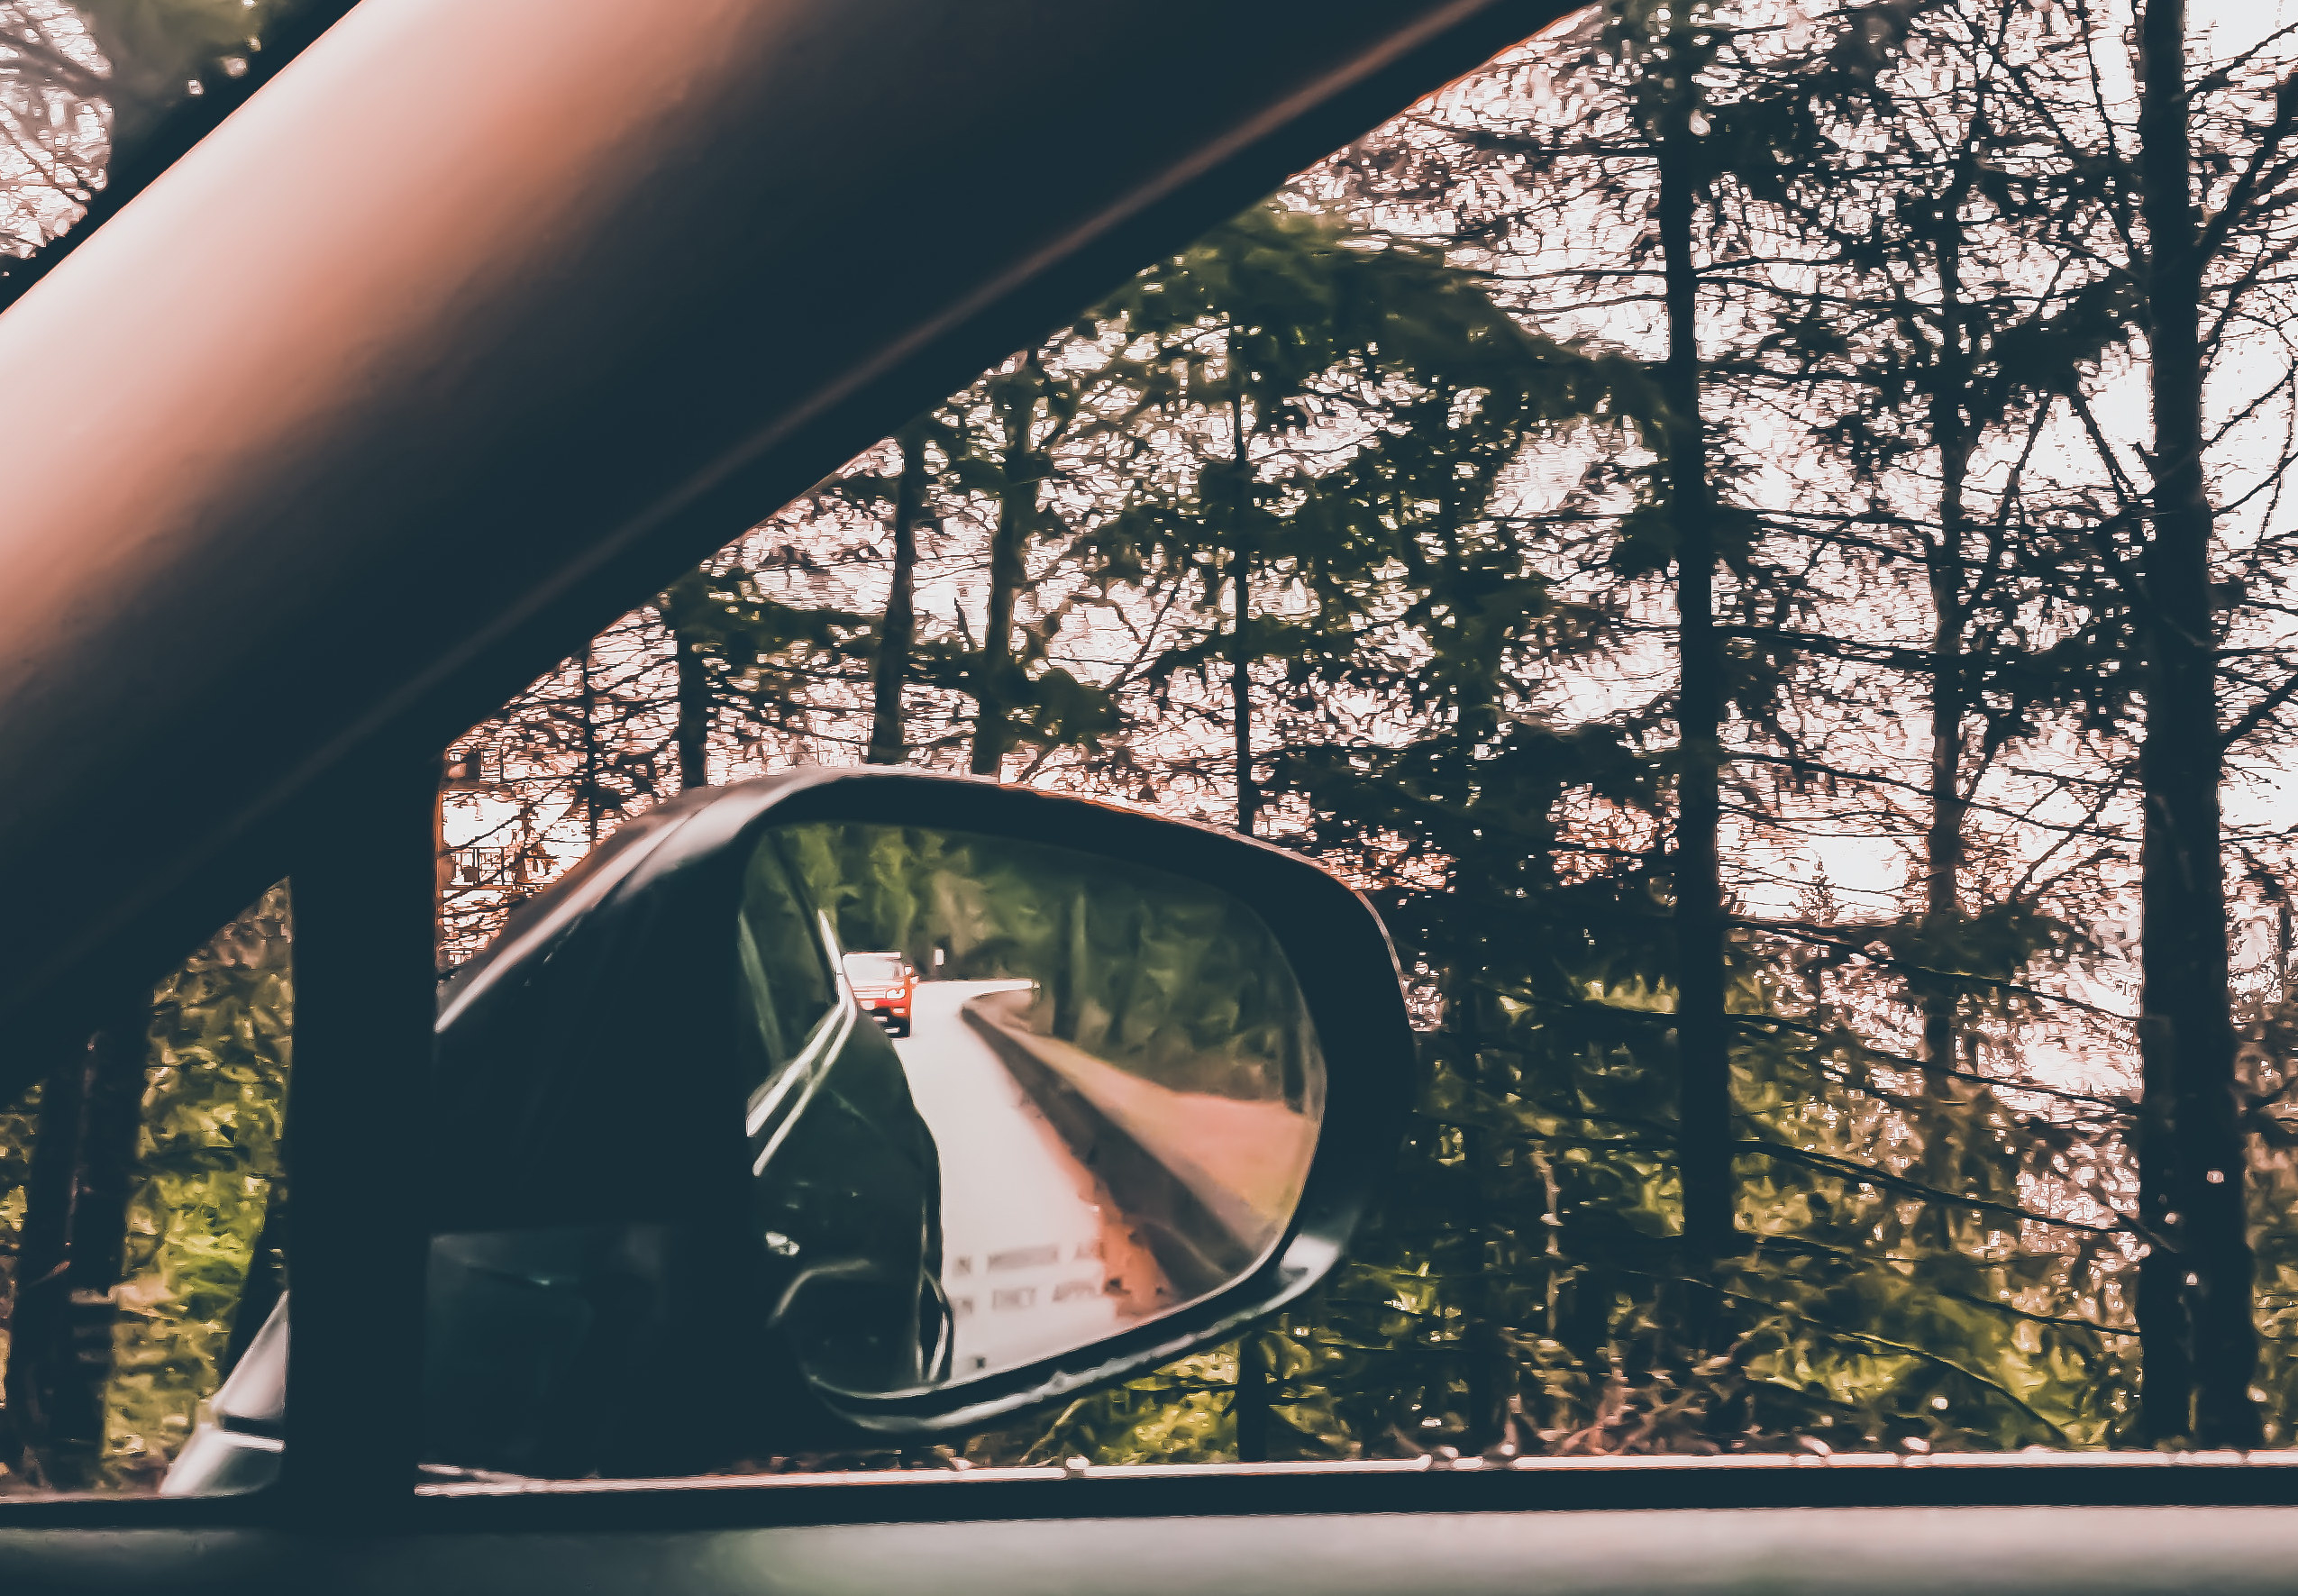 View of a car side mirror on a windy road